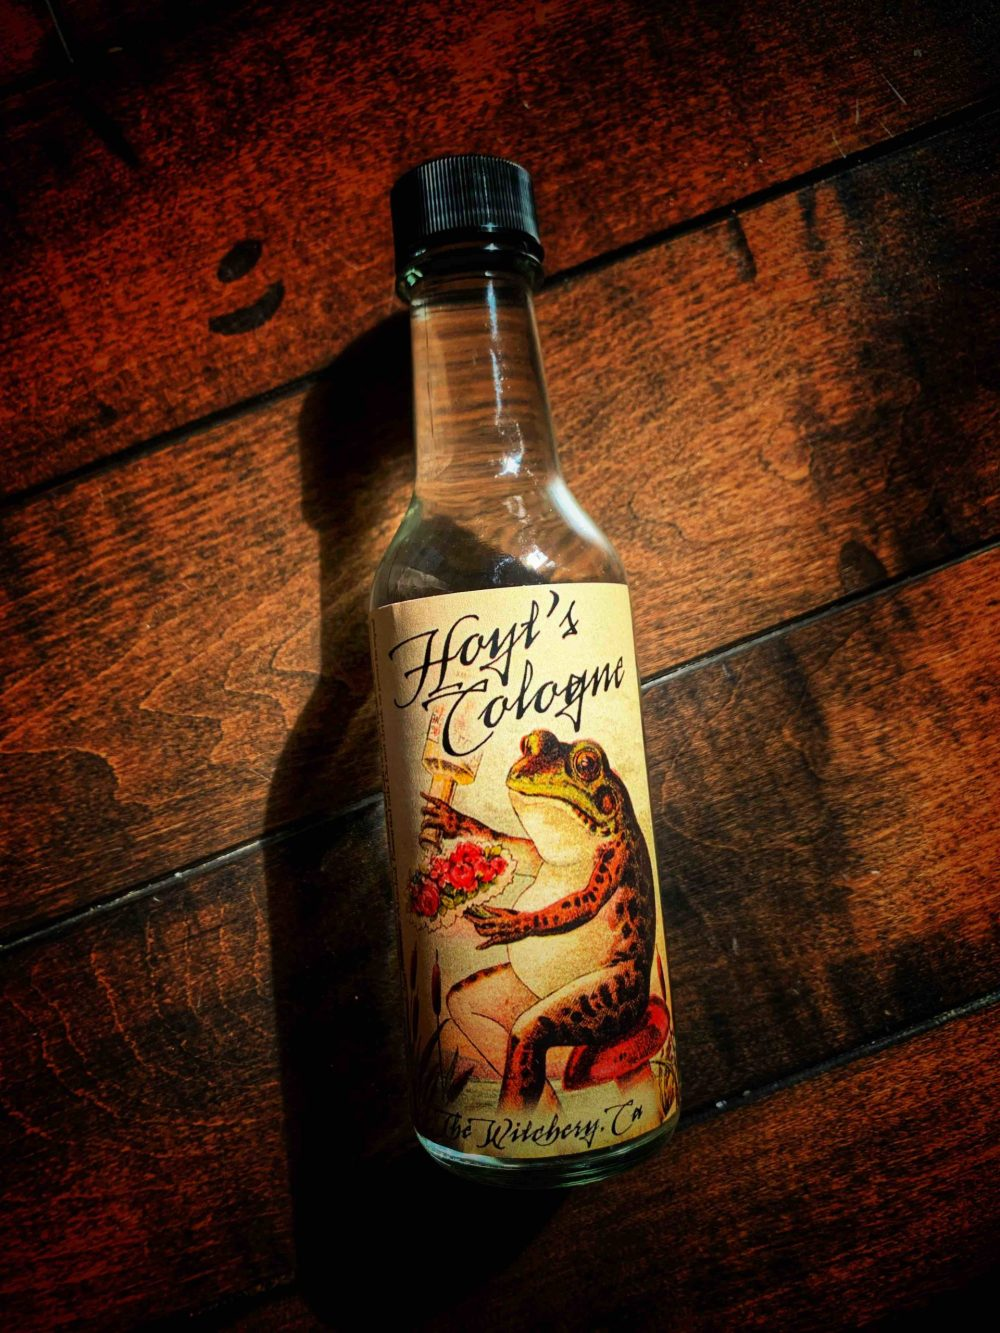 The Witchery Hoyts Cologne